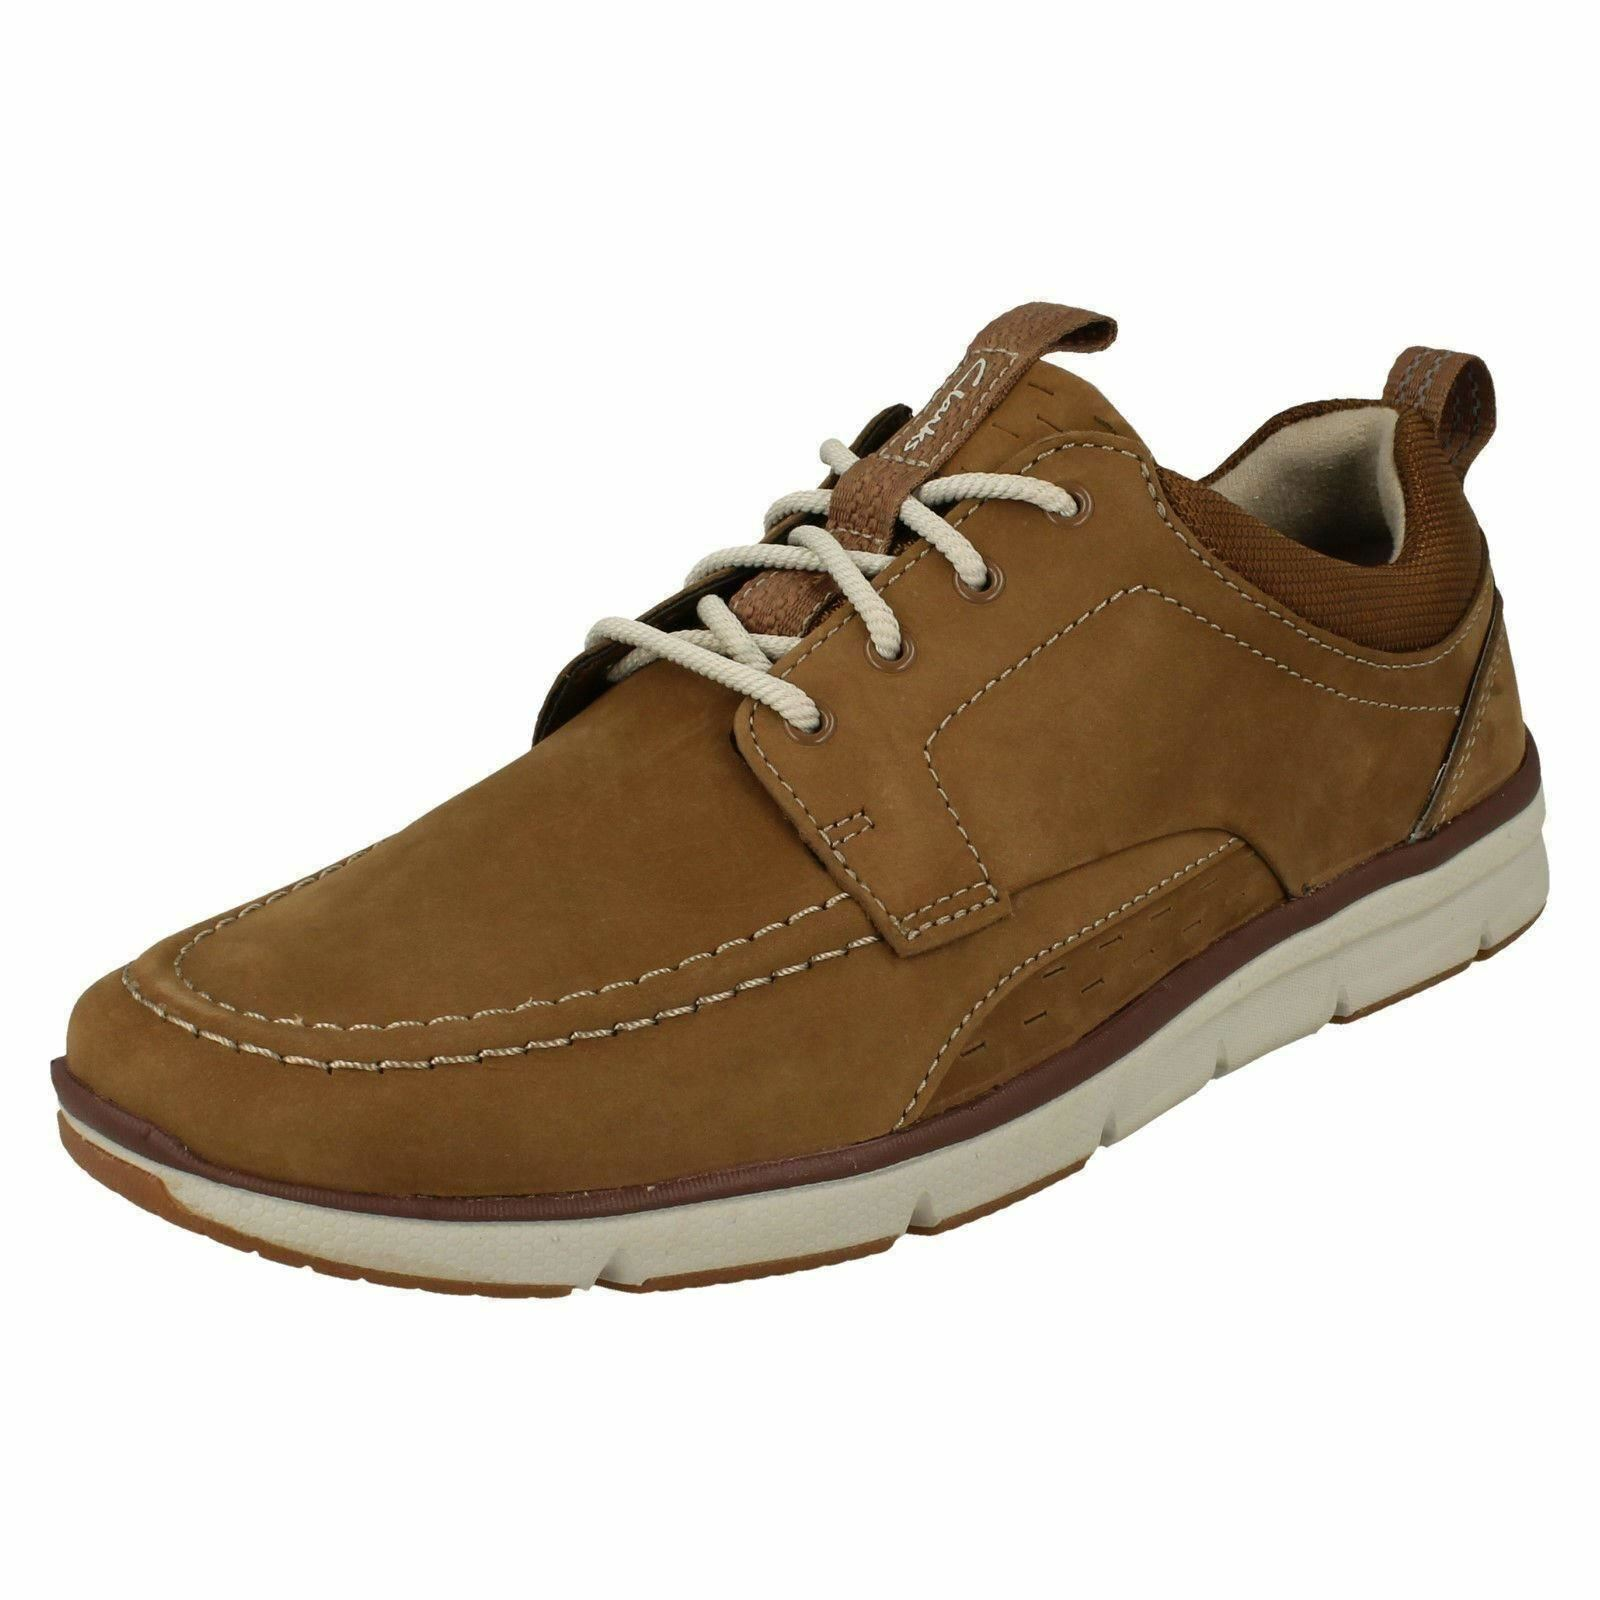 Mens Clarks Orson Bay Tan Nubuck Leather Casual Lace Up shoes - G Fitting